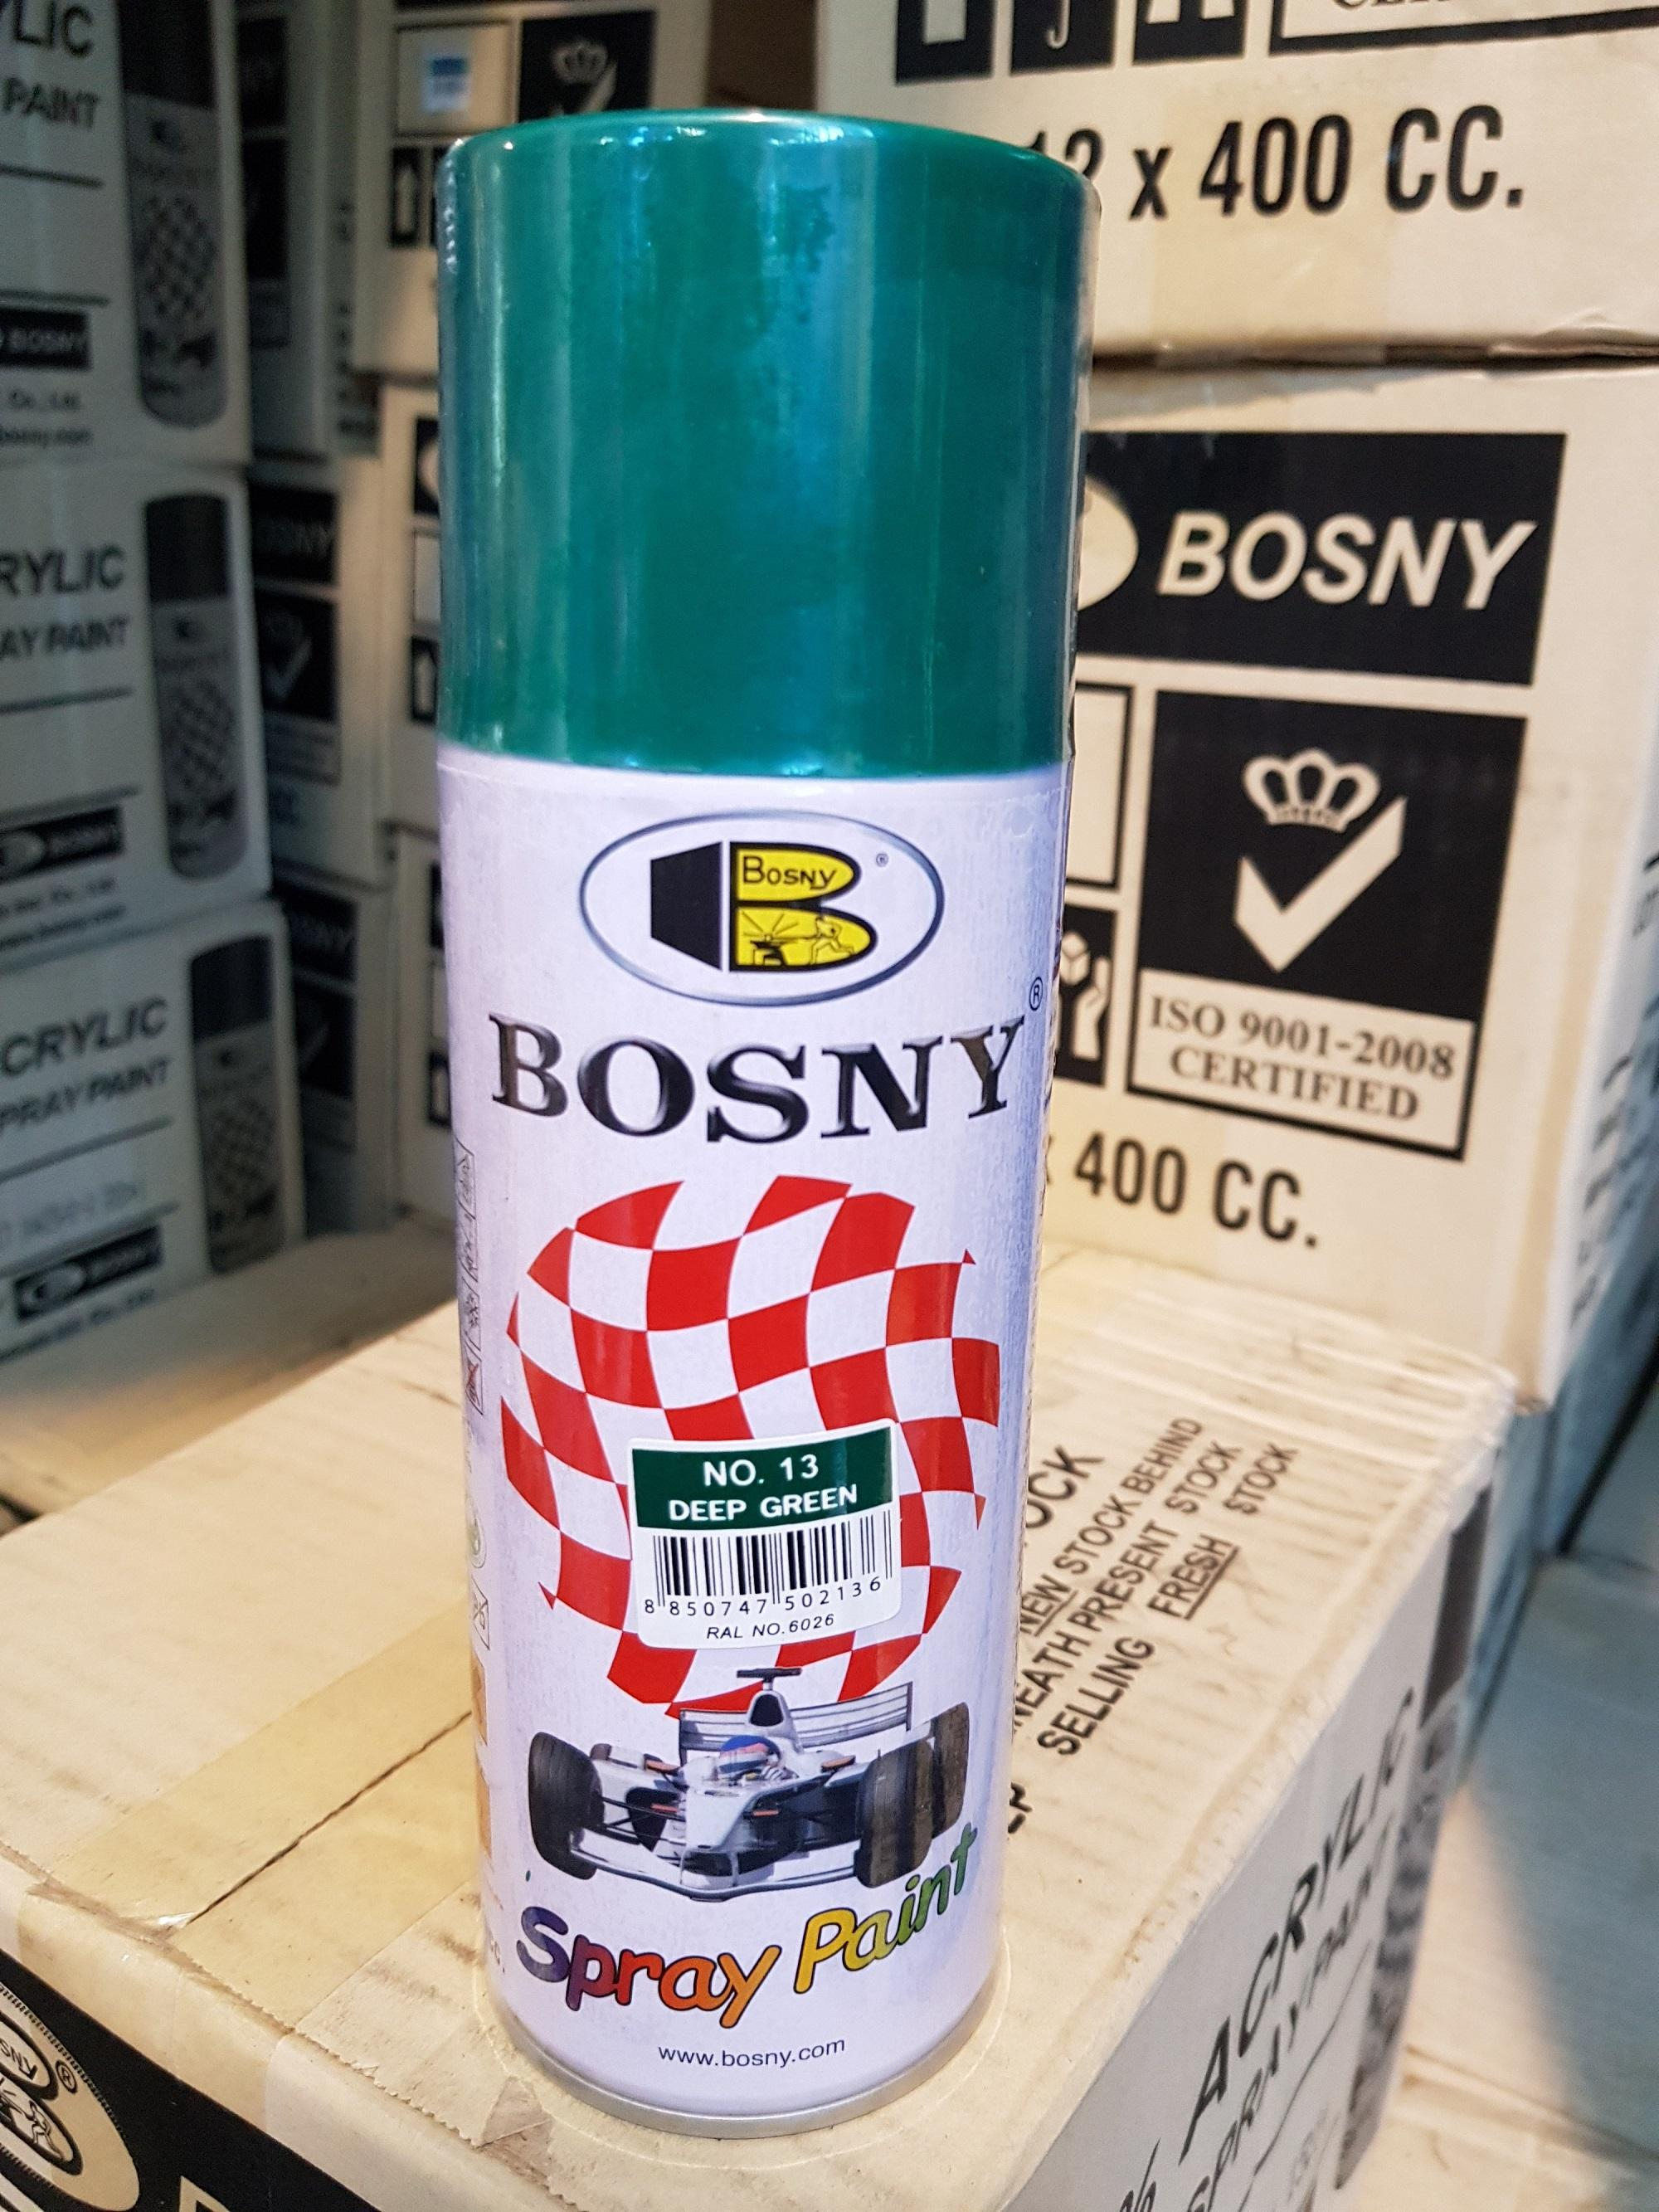 BANSOON BOSNY Spray Paint - Deep Green No. 13 (100% Acrylic) Quick Dry Highly durable